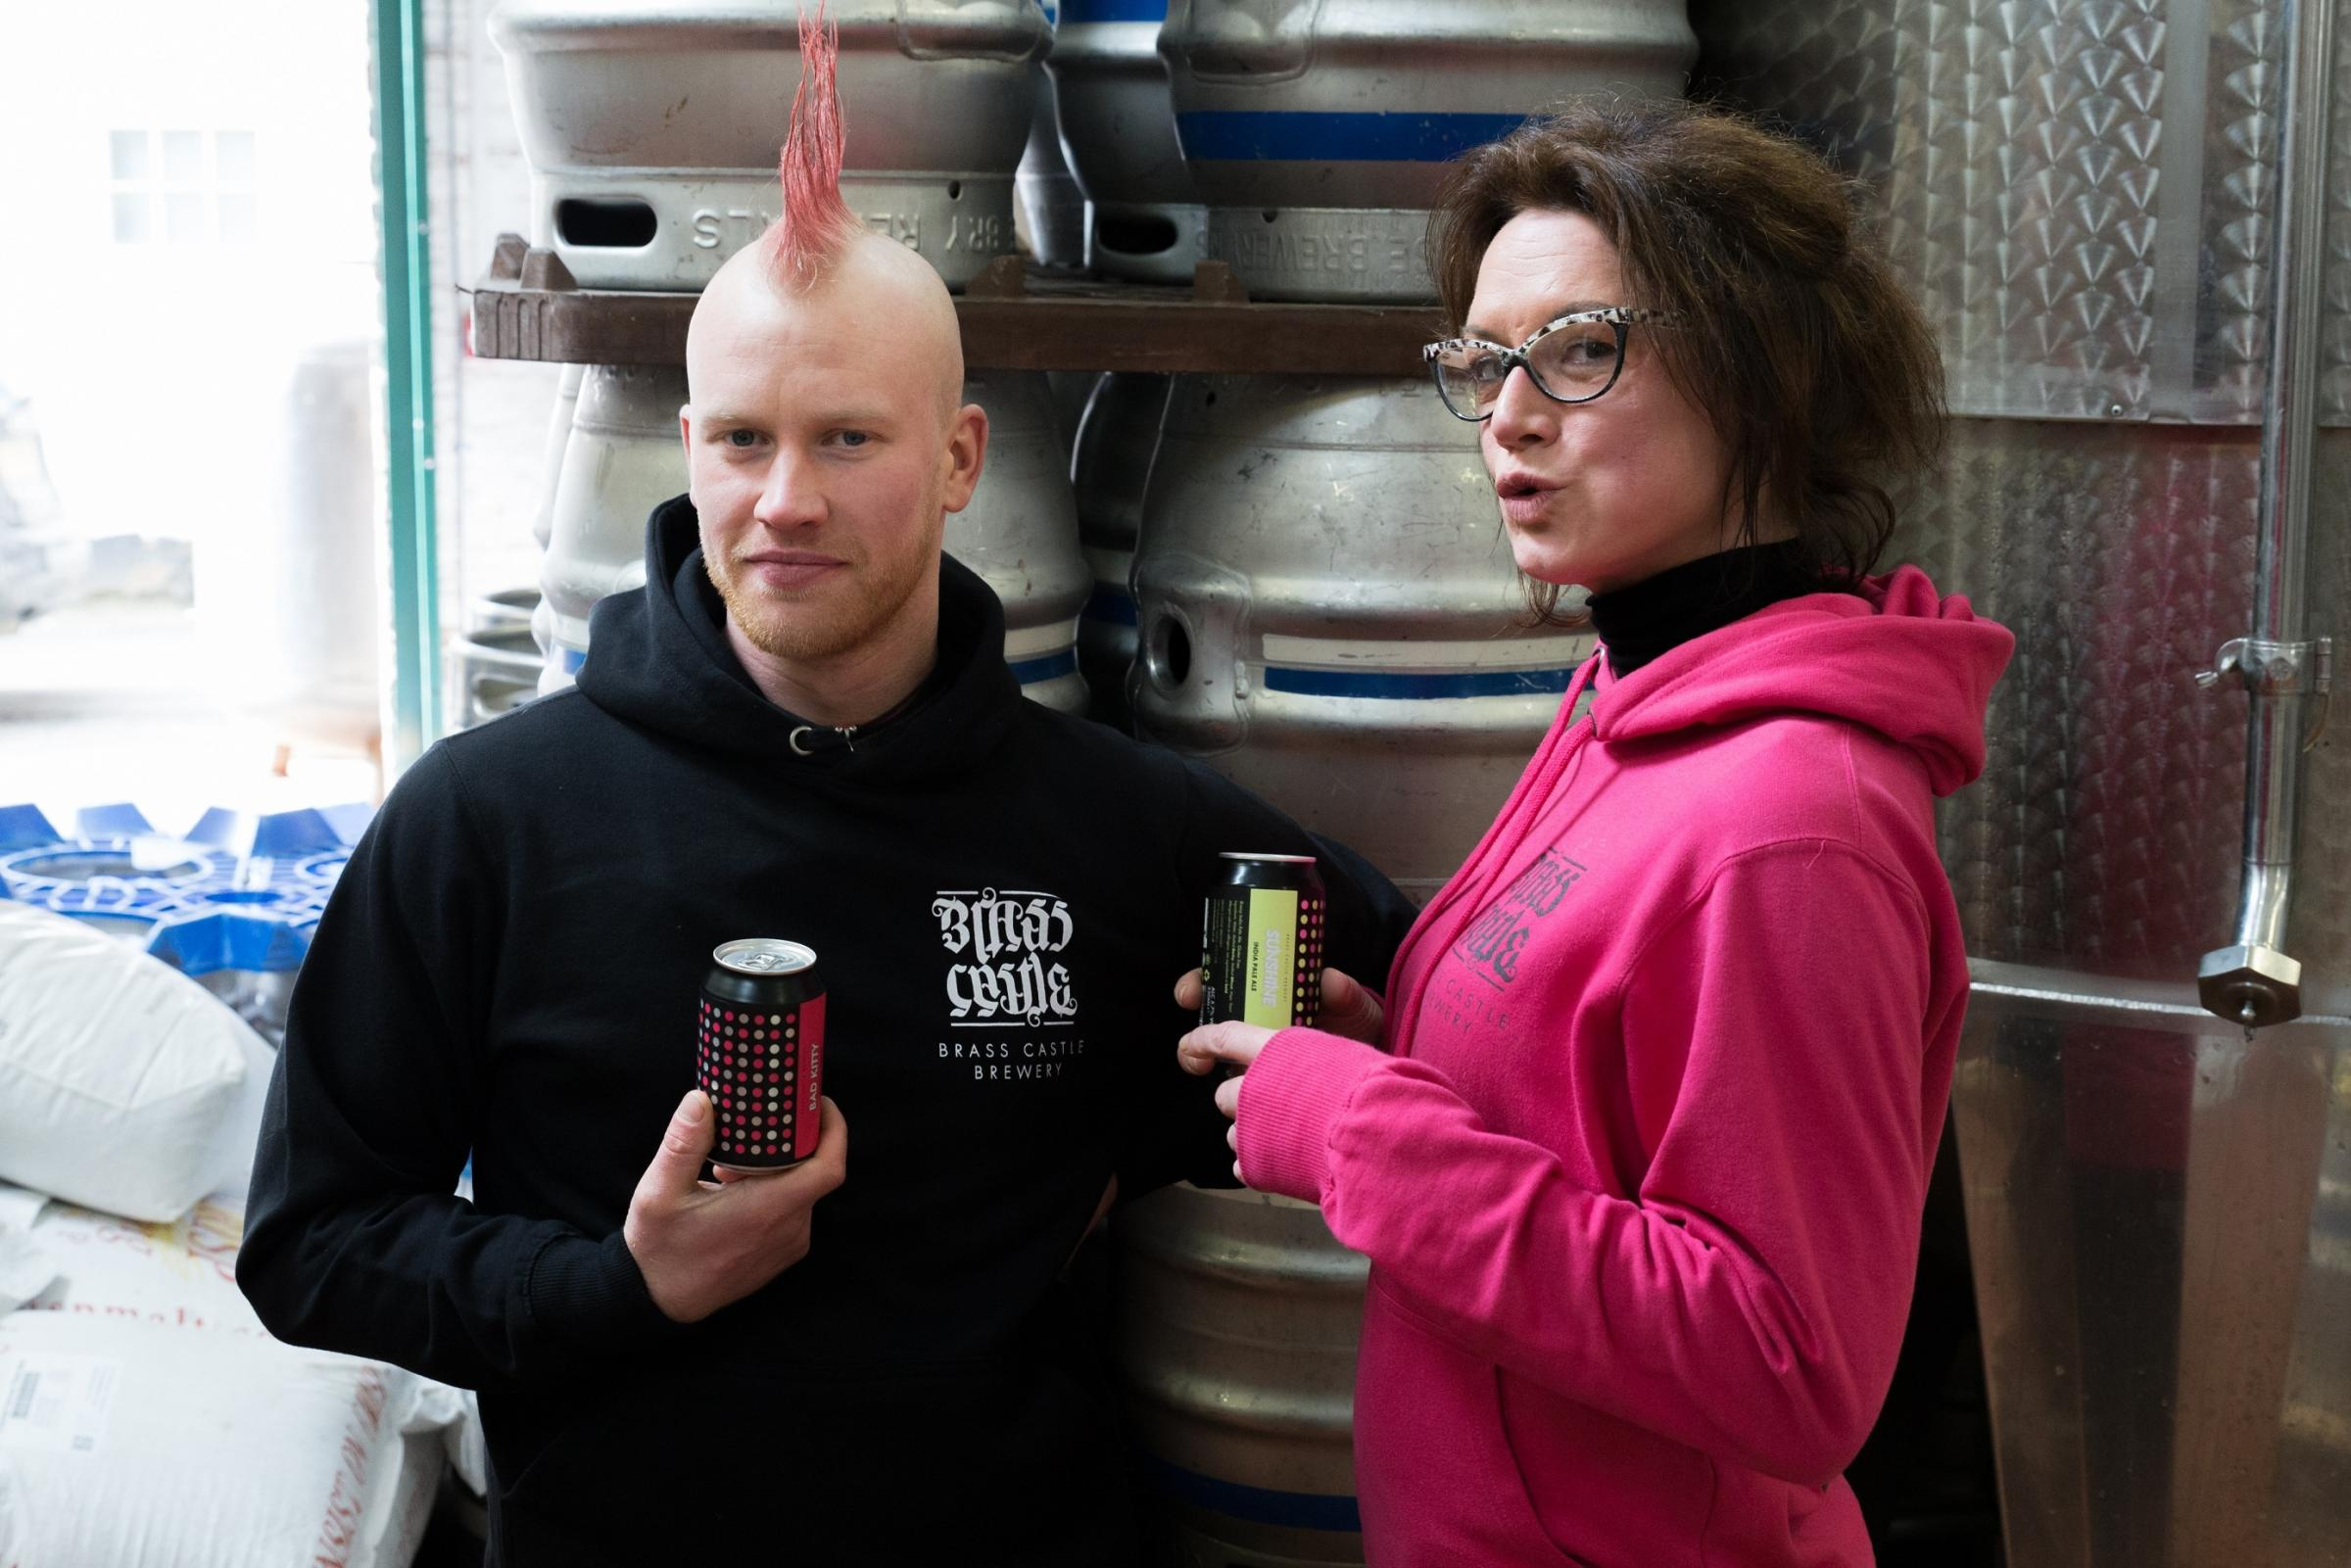 Brewer Sam Teale and marketing manager Amy Pulling at Brass Castle Brewery in Malton, with cans of Bad Kitty and Sunshine IPA